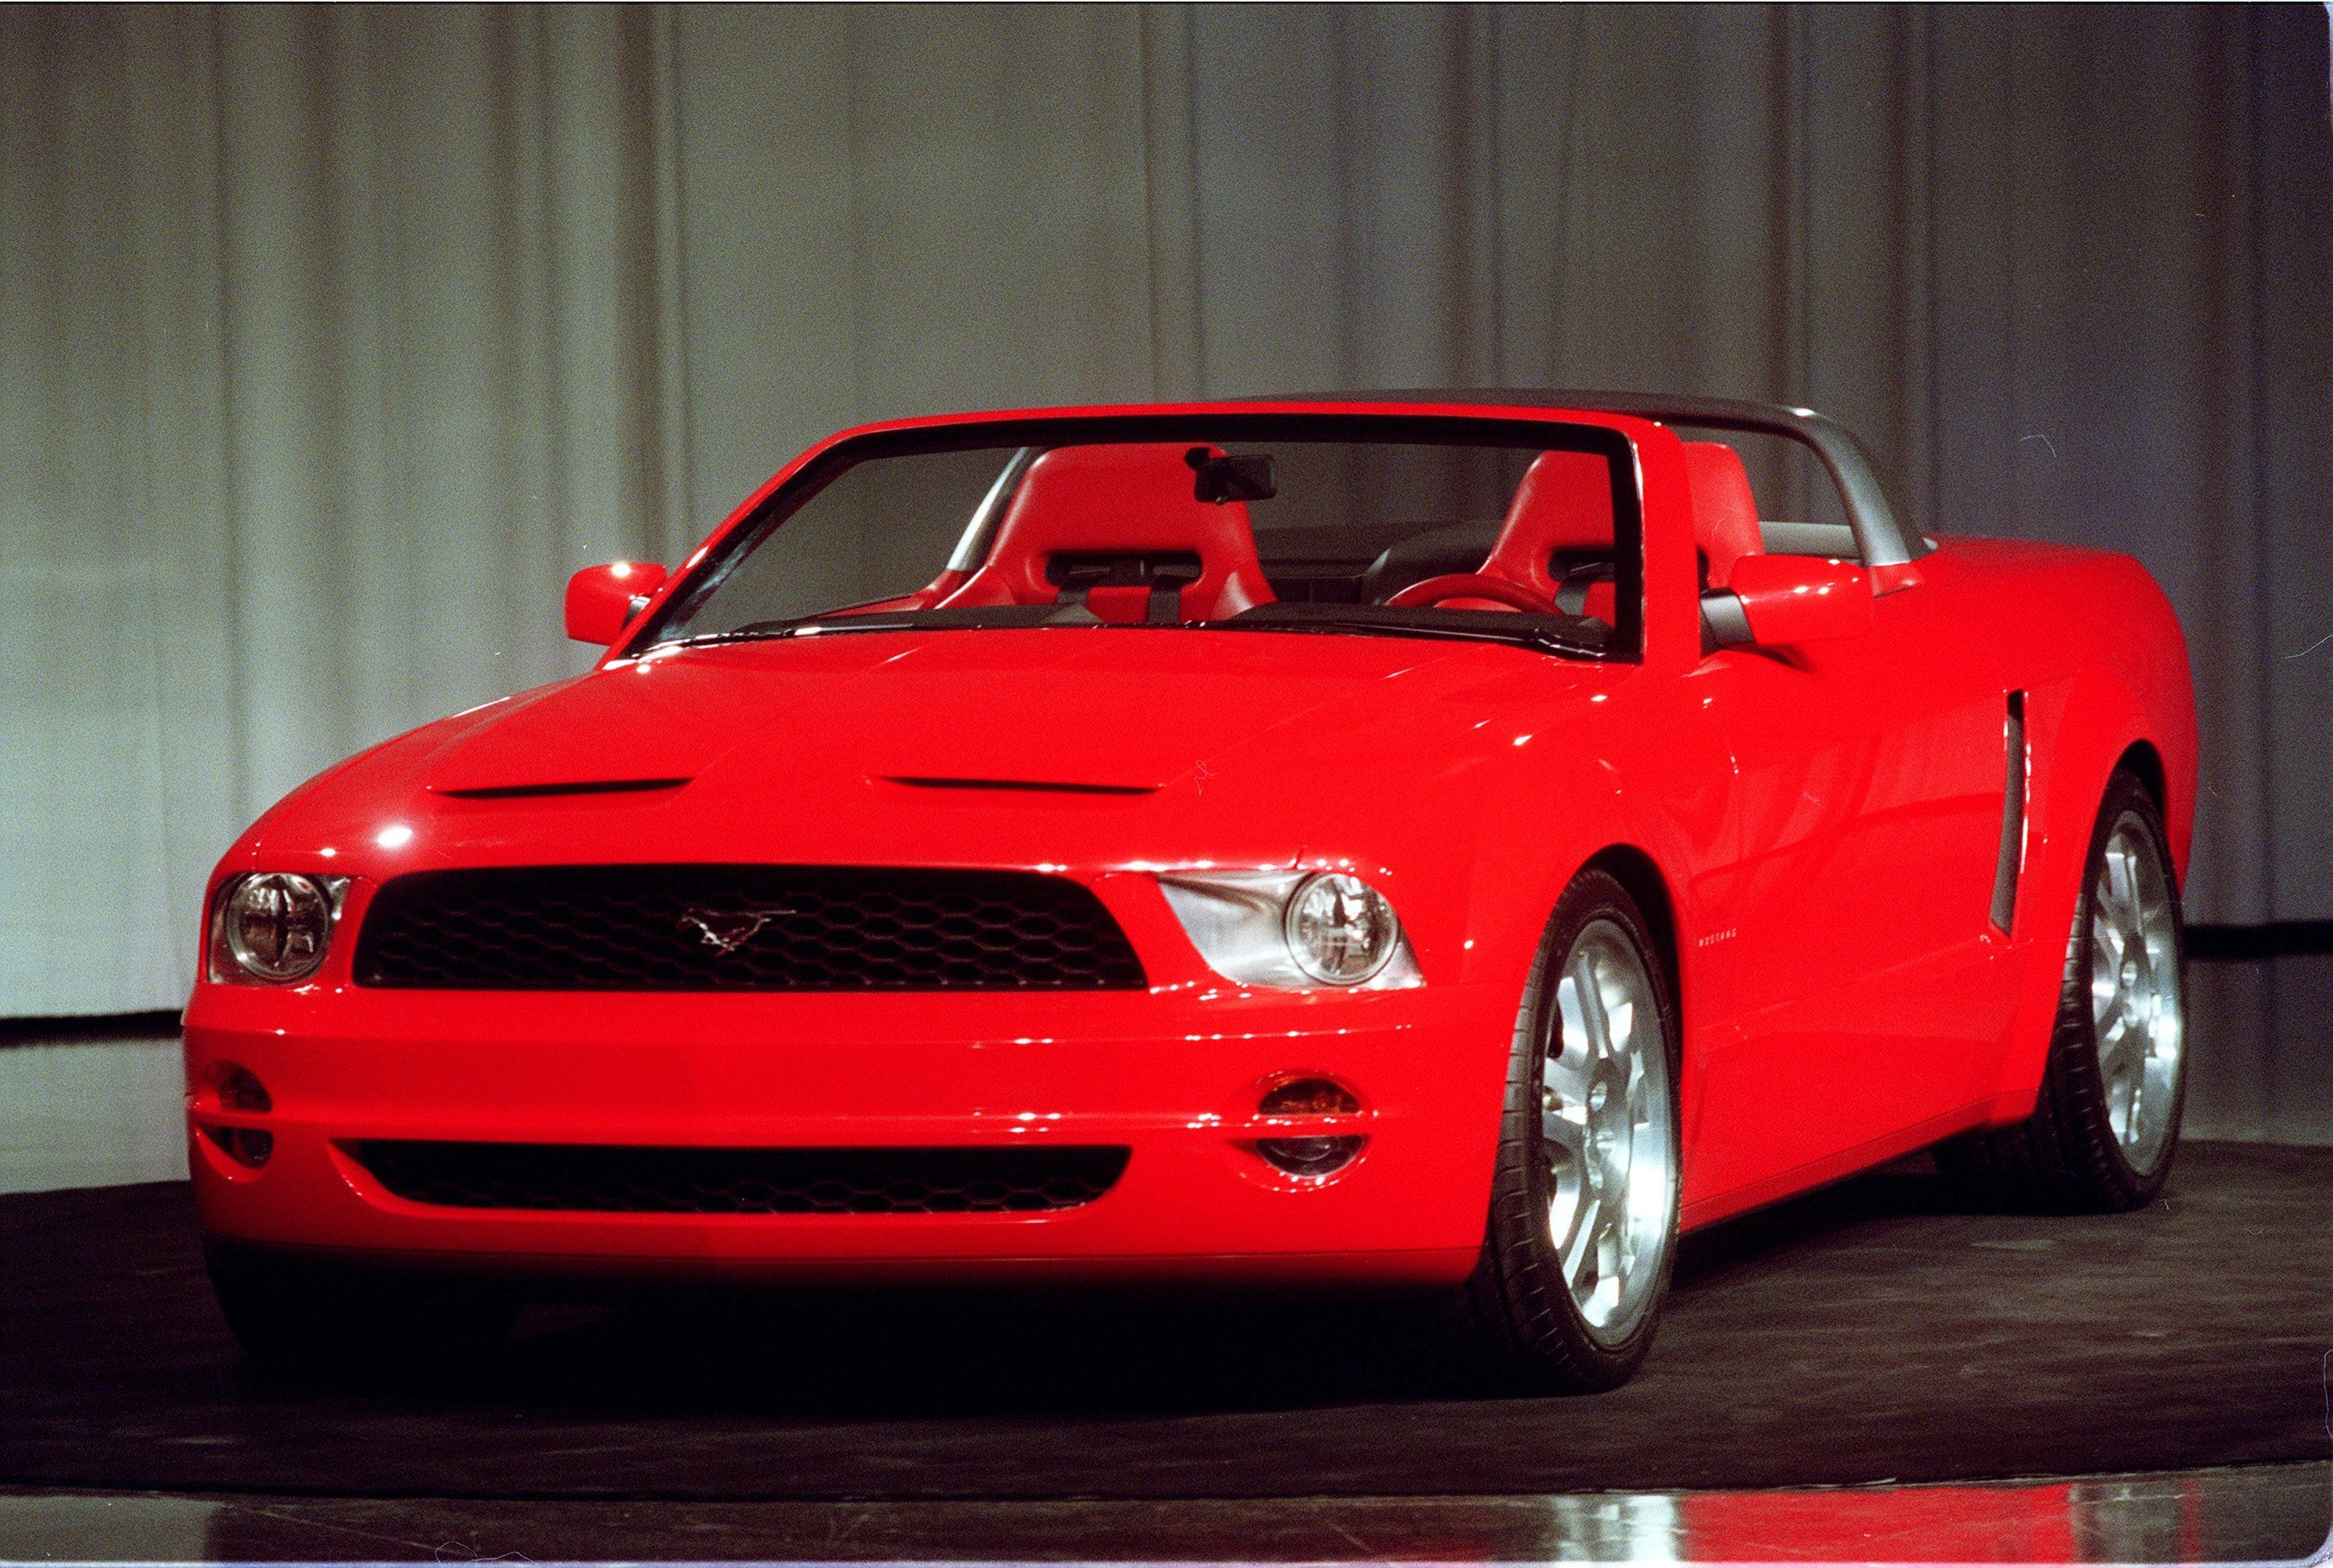 & Ford Mustang: 50 songs featuring the iconic car markmcfarlin.com